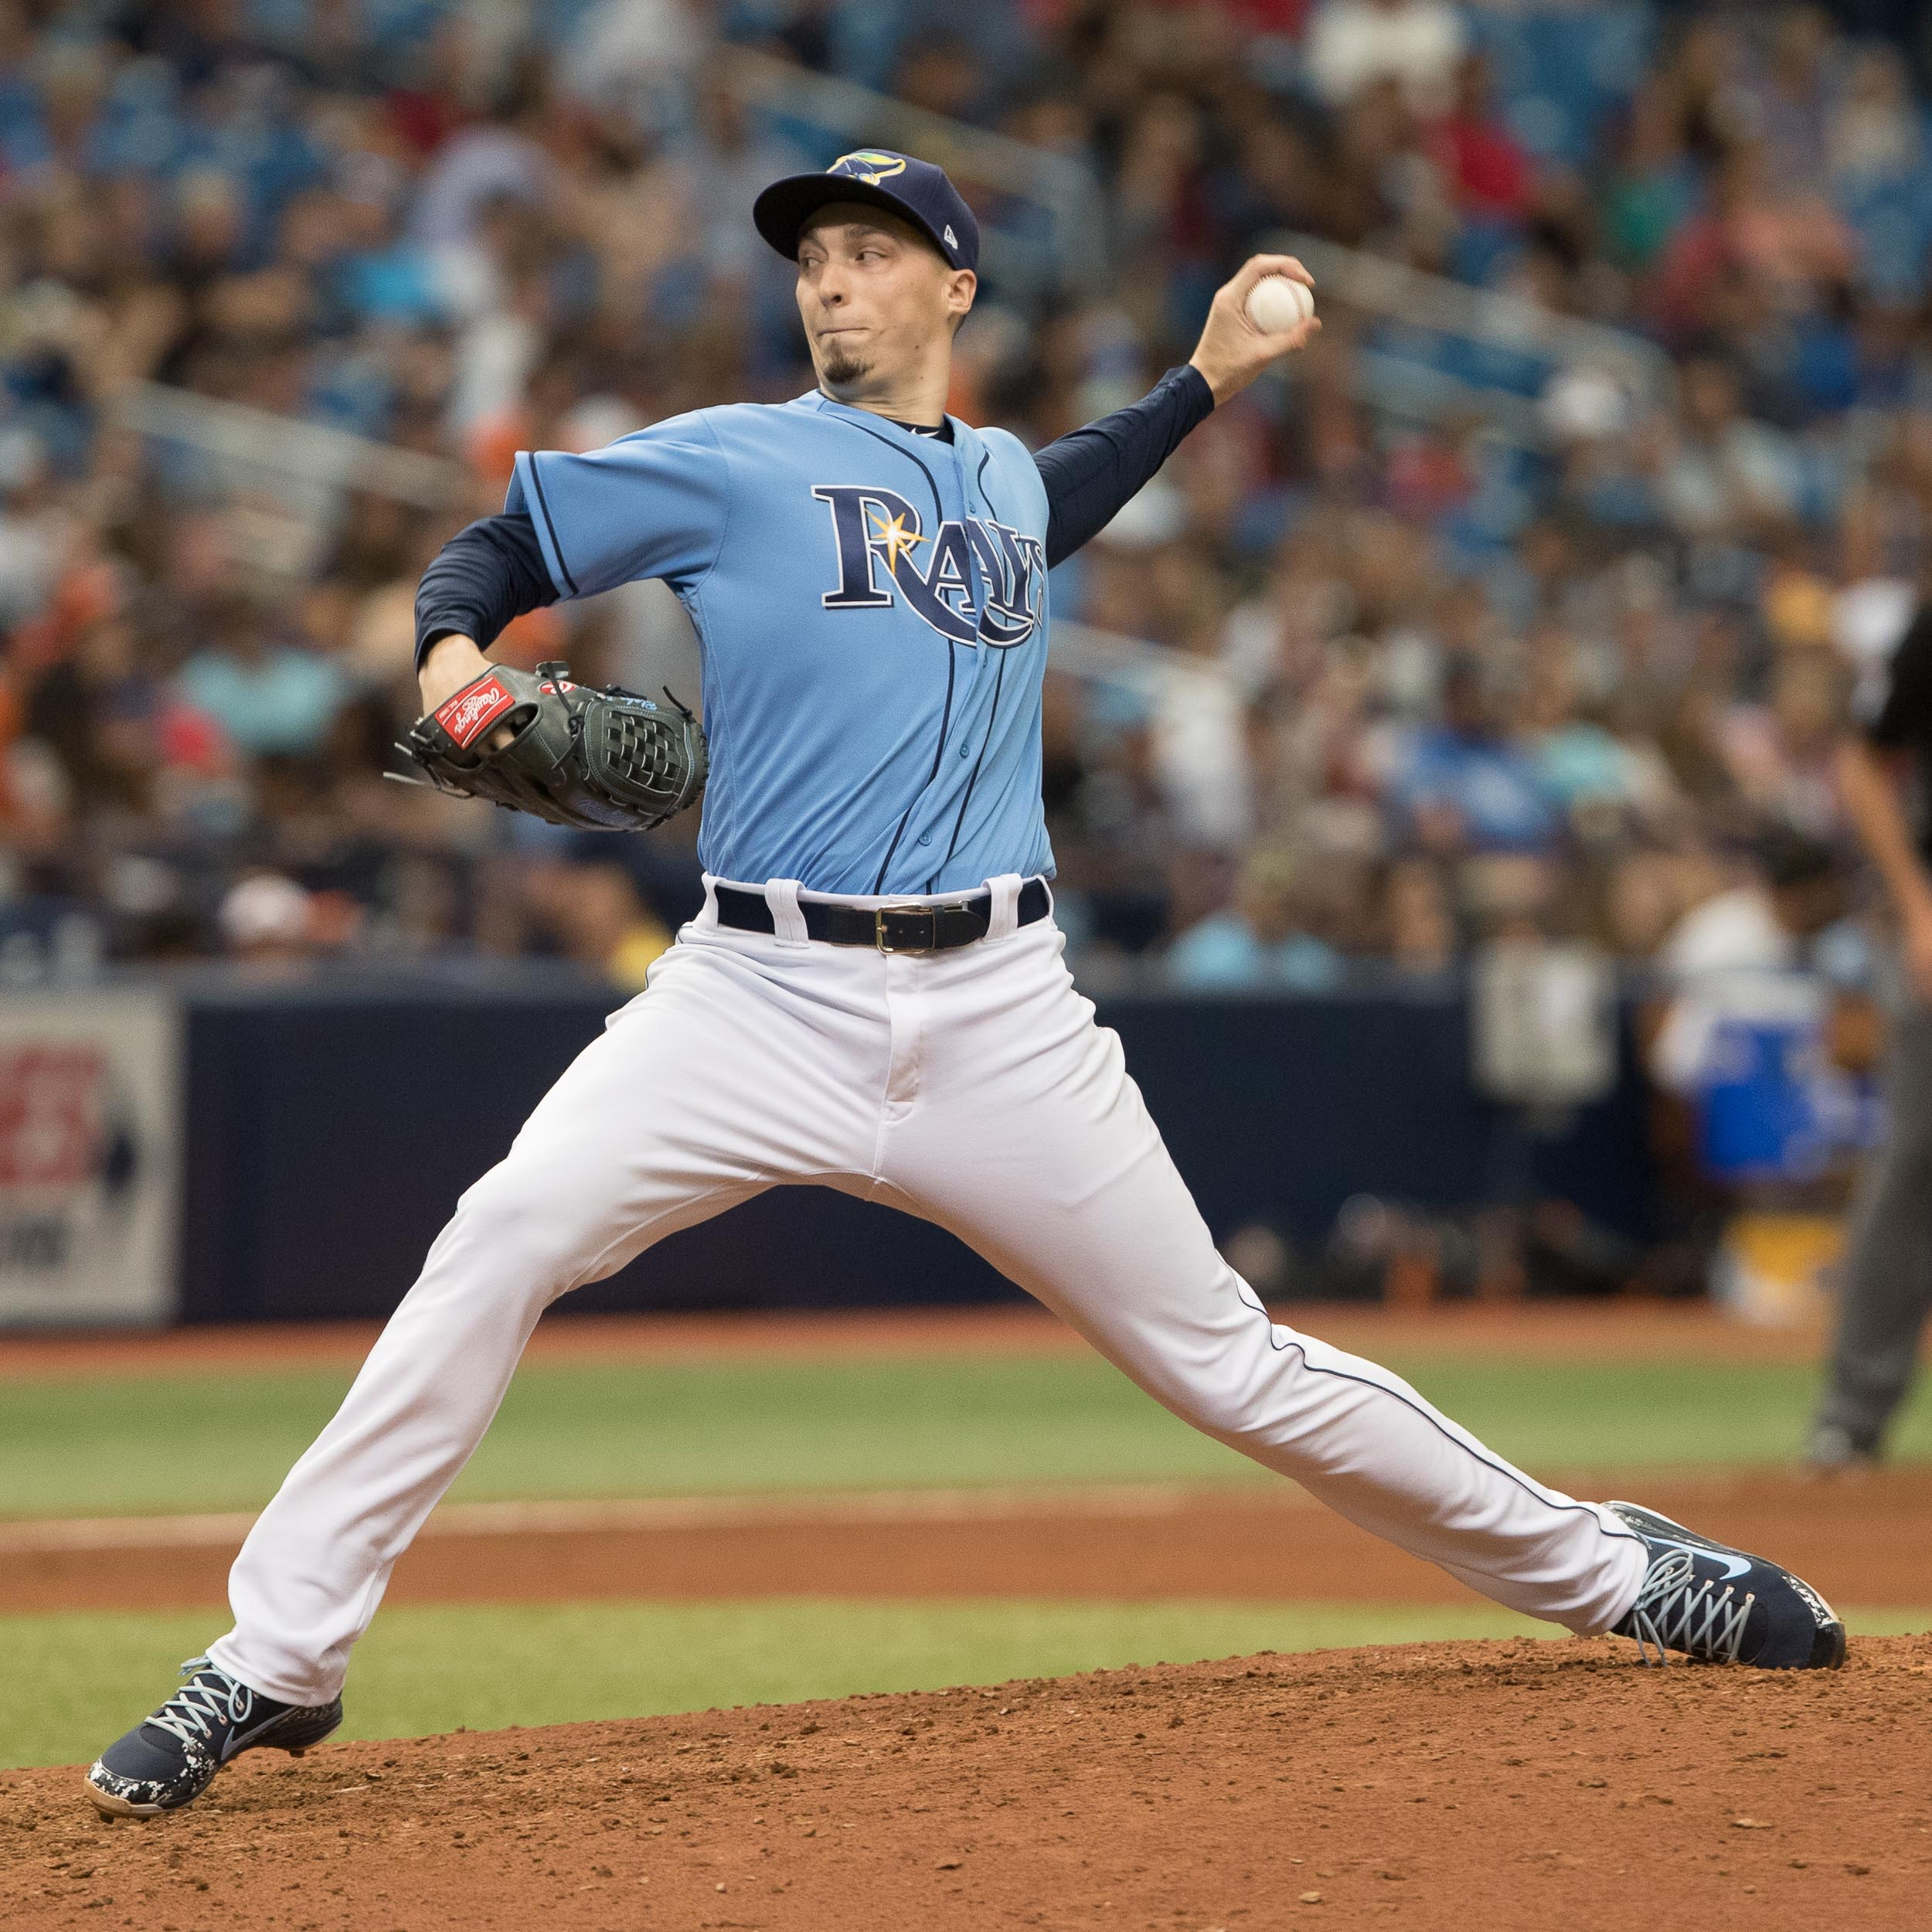 Blake Snell won his 11th game of the season../STEVEN MUNCIE